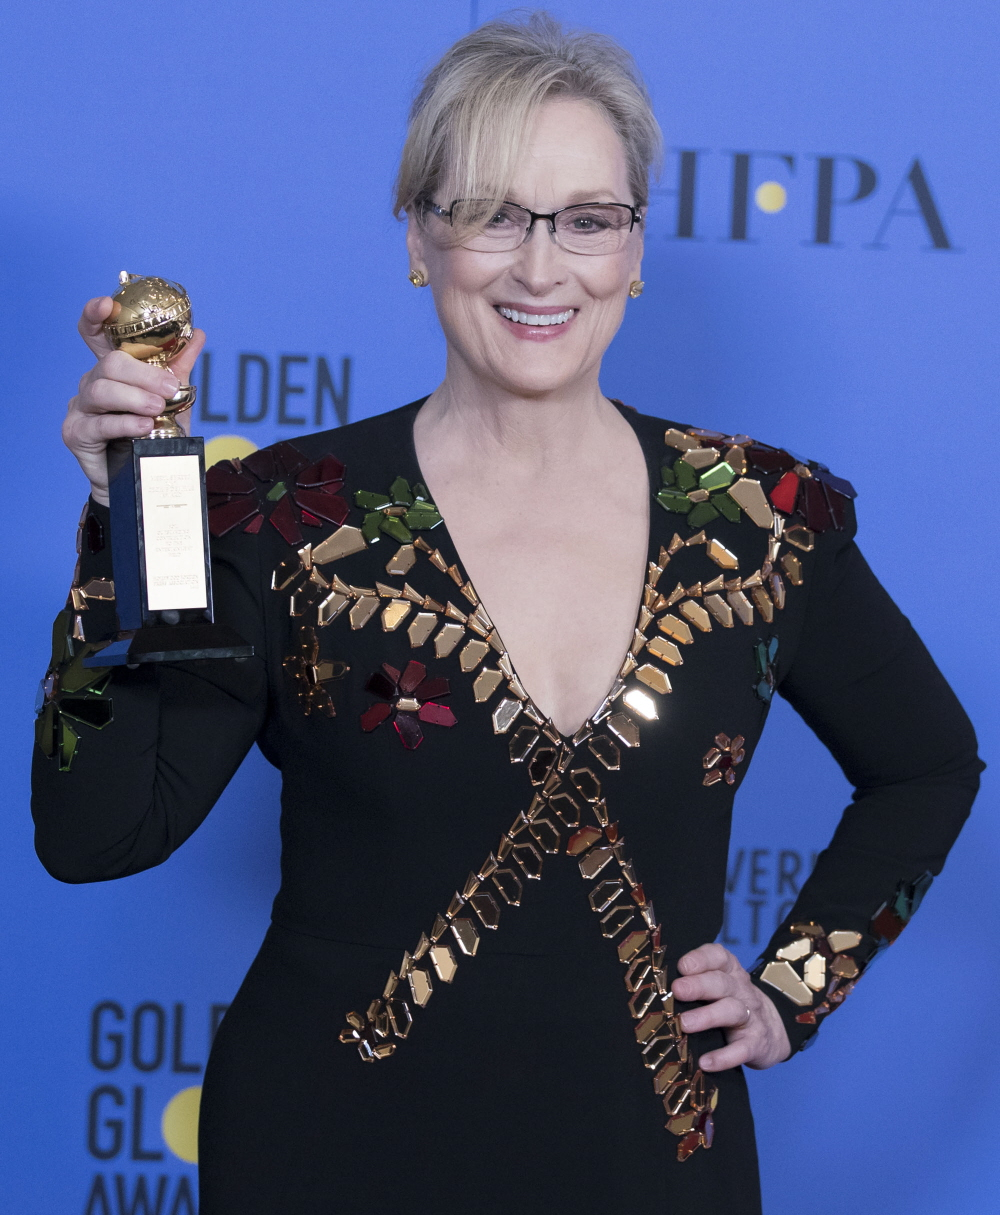 FFN_CHP_Golden_Globes_Press_Room_010817_52276899  bitchy | Donald Trump: Meryl Streep is 'some of the overrated actresses in Hollywood' FFN CHP Golden Globes Press Room 010817 52276899